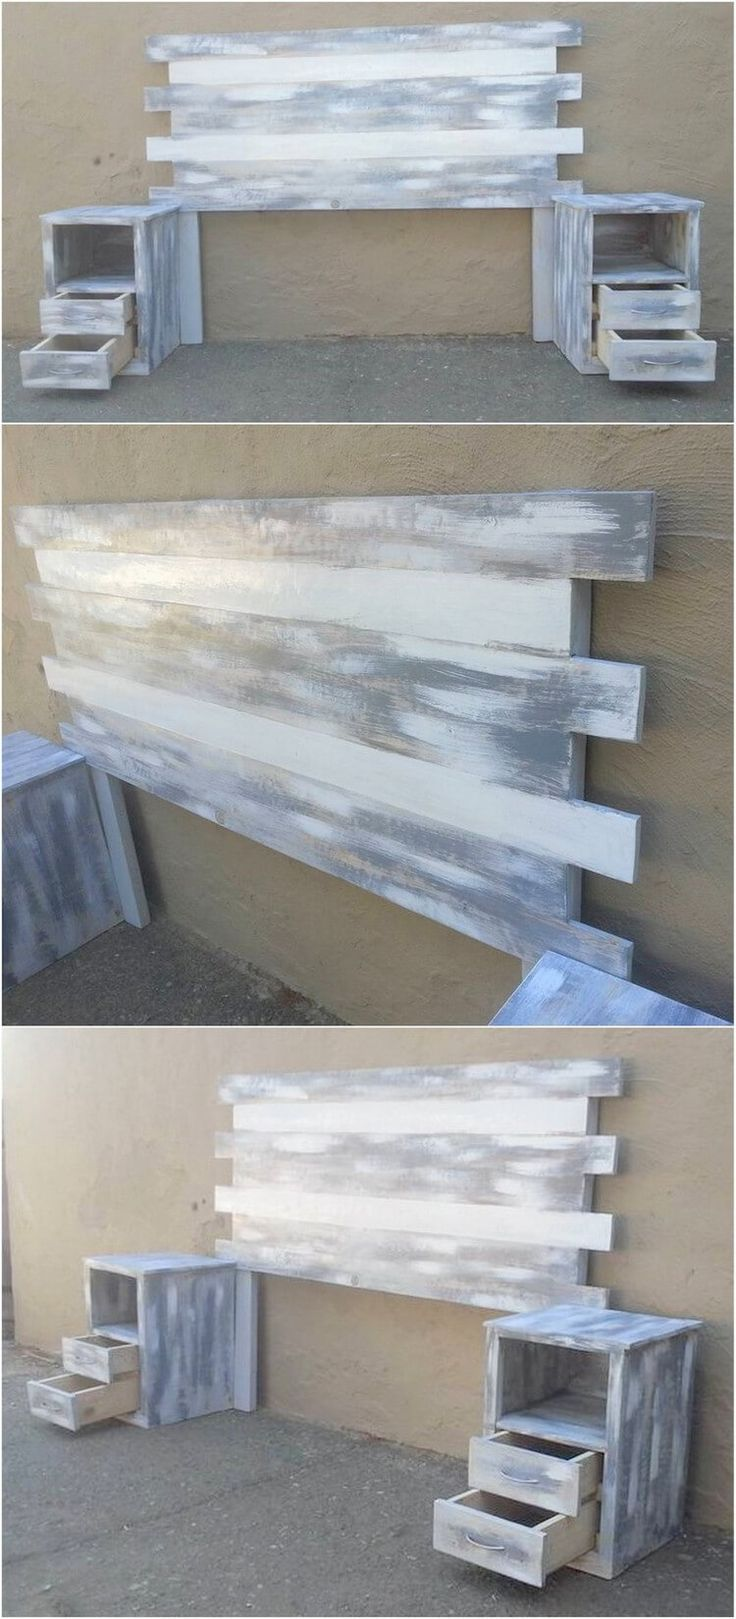 Staggering Incredible Shipping Pallet Projects Distressed ...